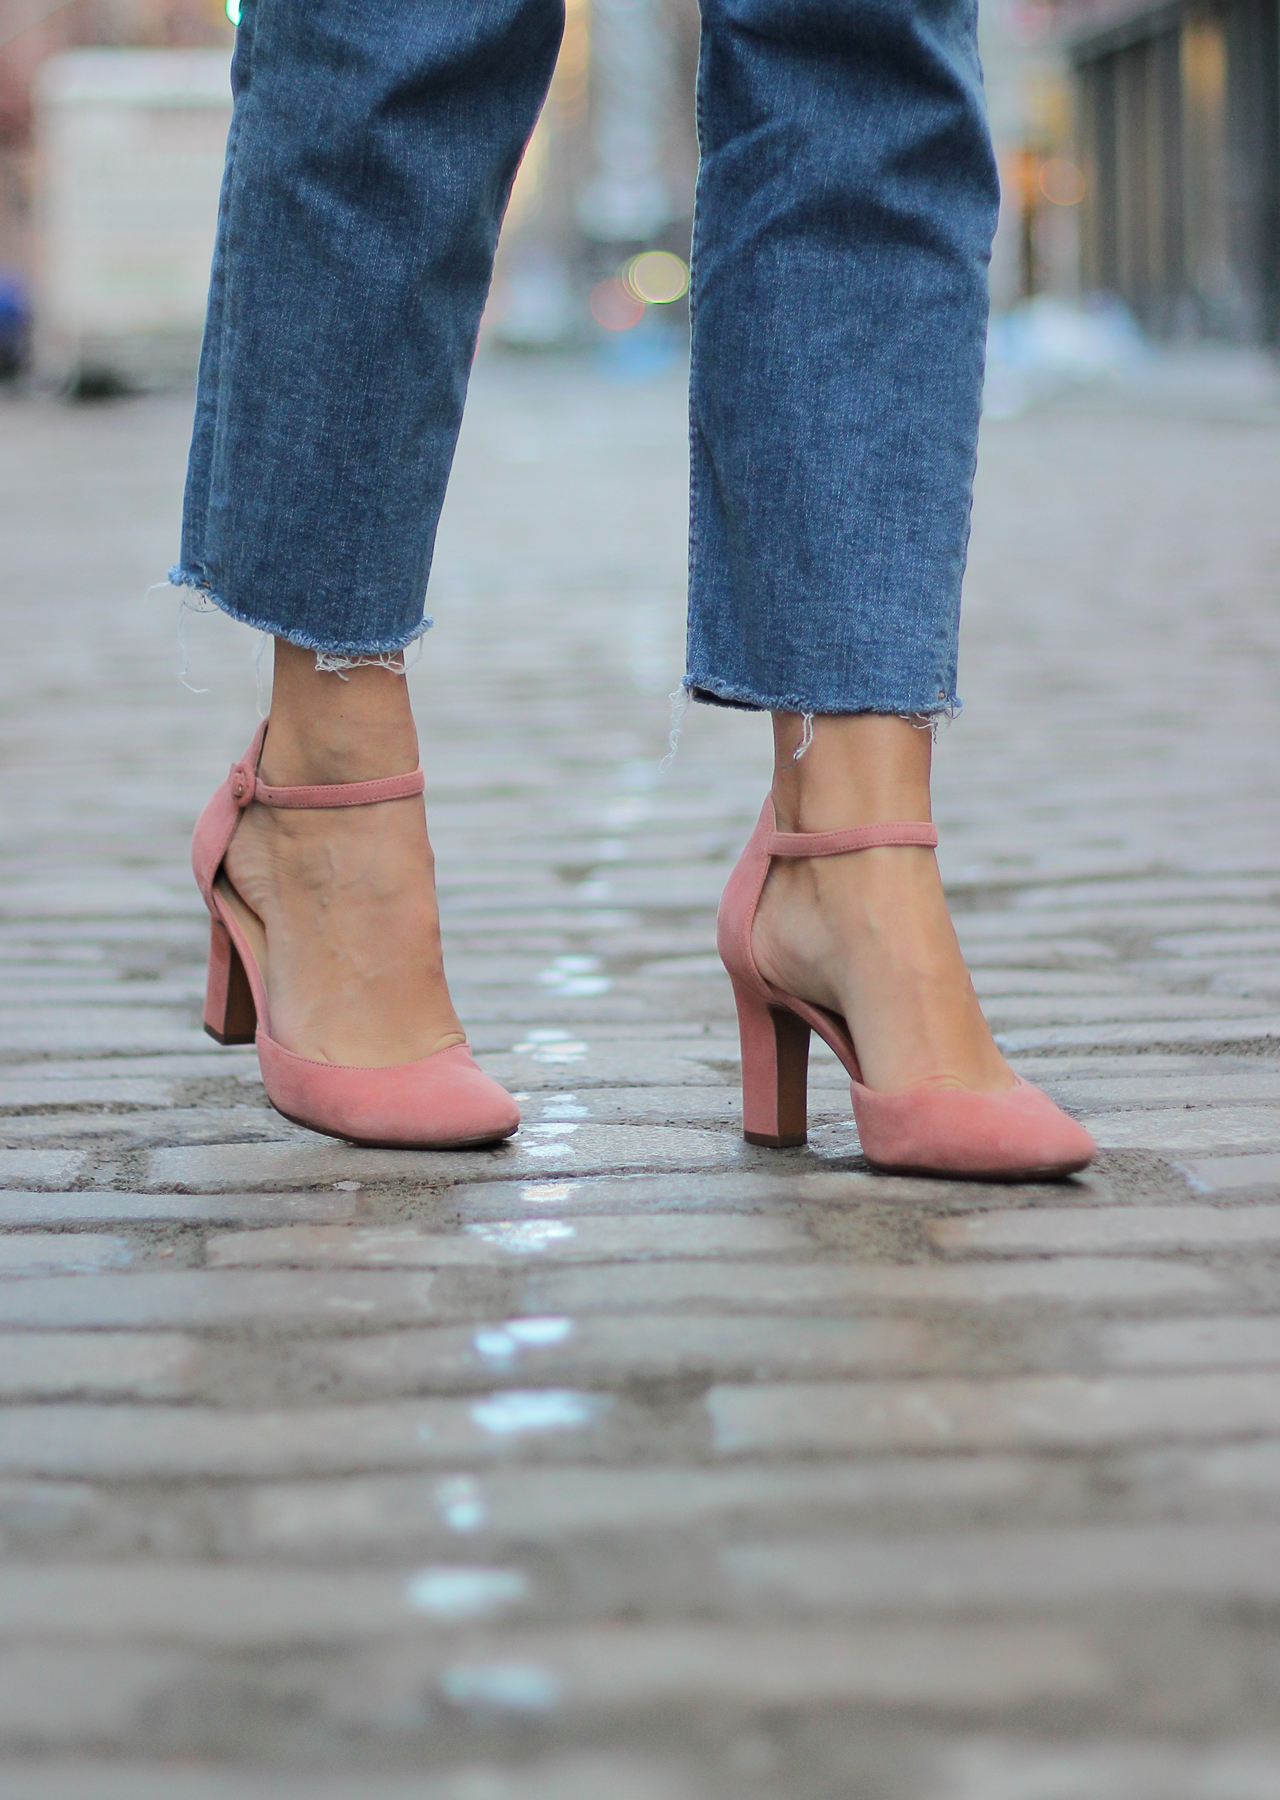 The Steele Maiden: Naturalizer Pink Suede Heels, Overalls and Eyelet Ruffle Blouse